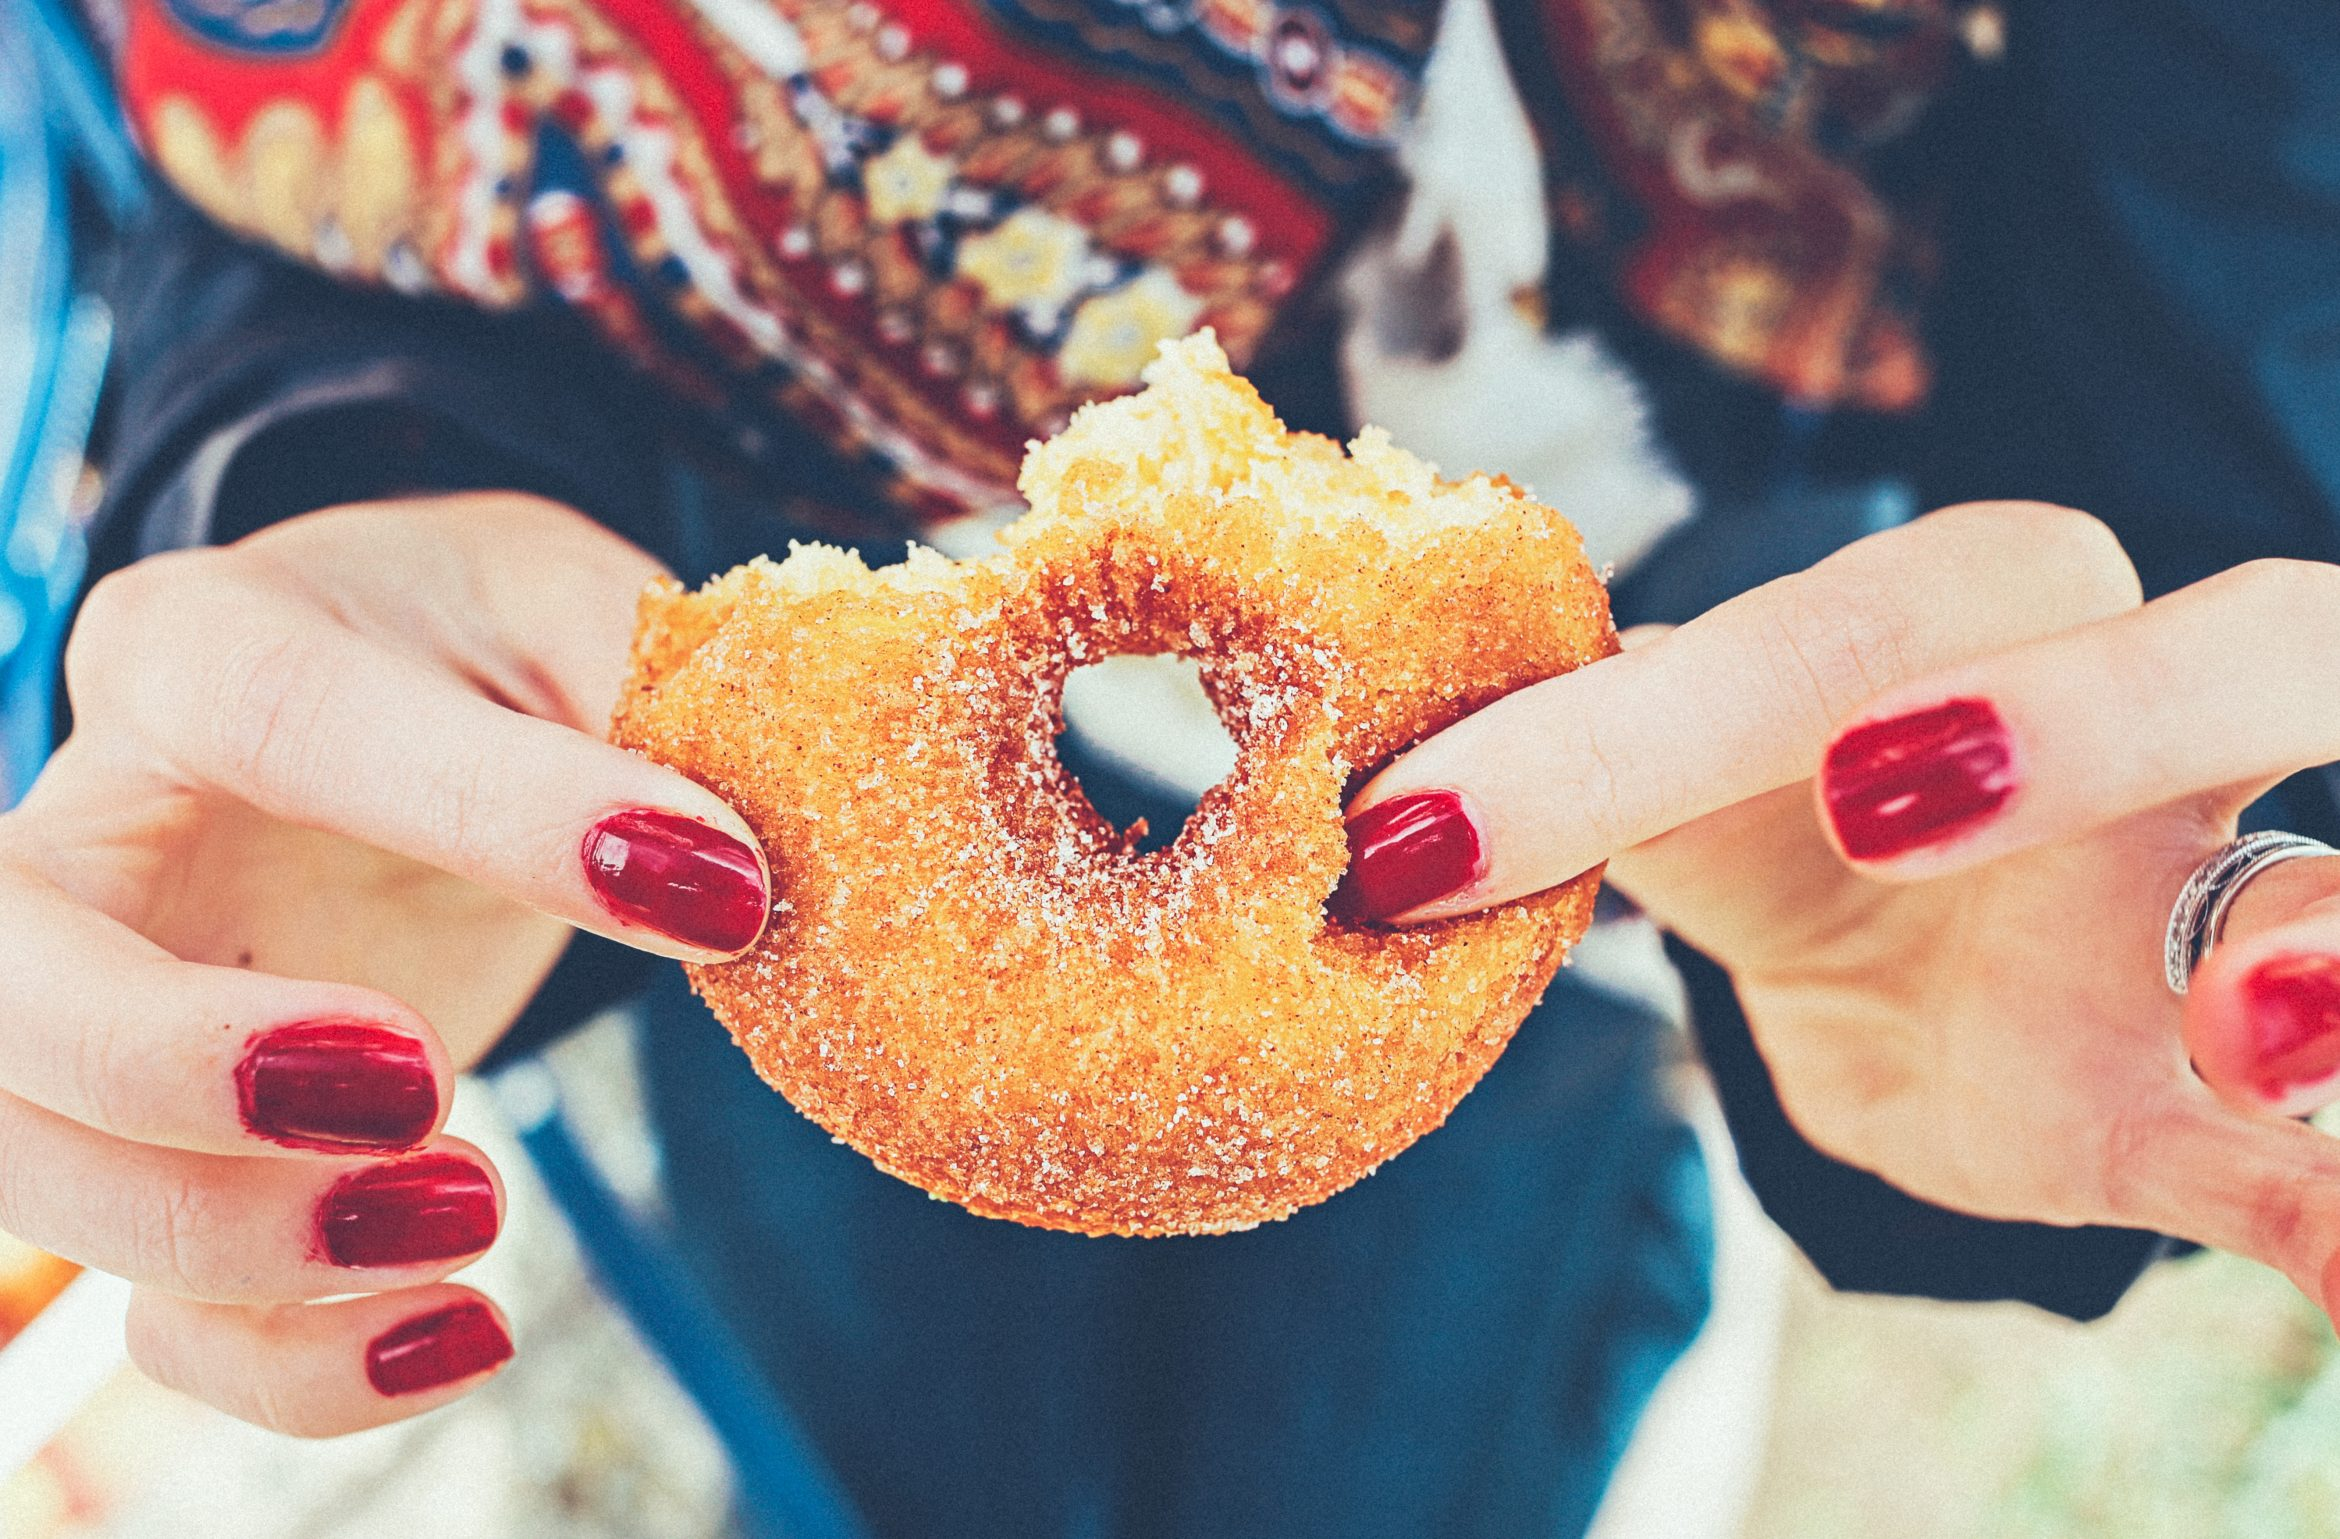 Millennials & Teens Sound Off: Their Absolute Favorite Things to Eat & Drink